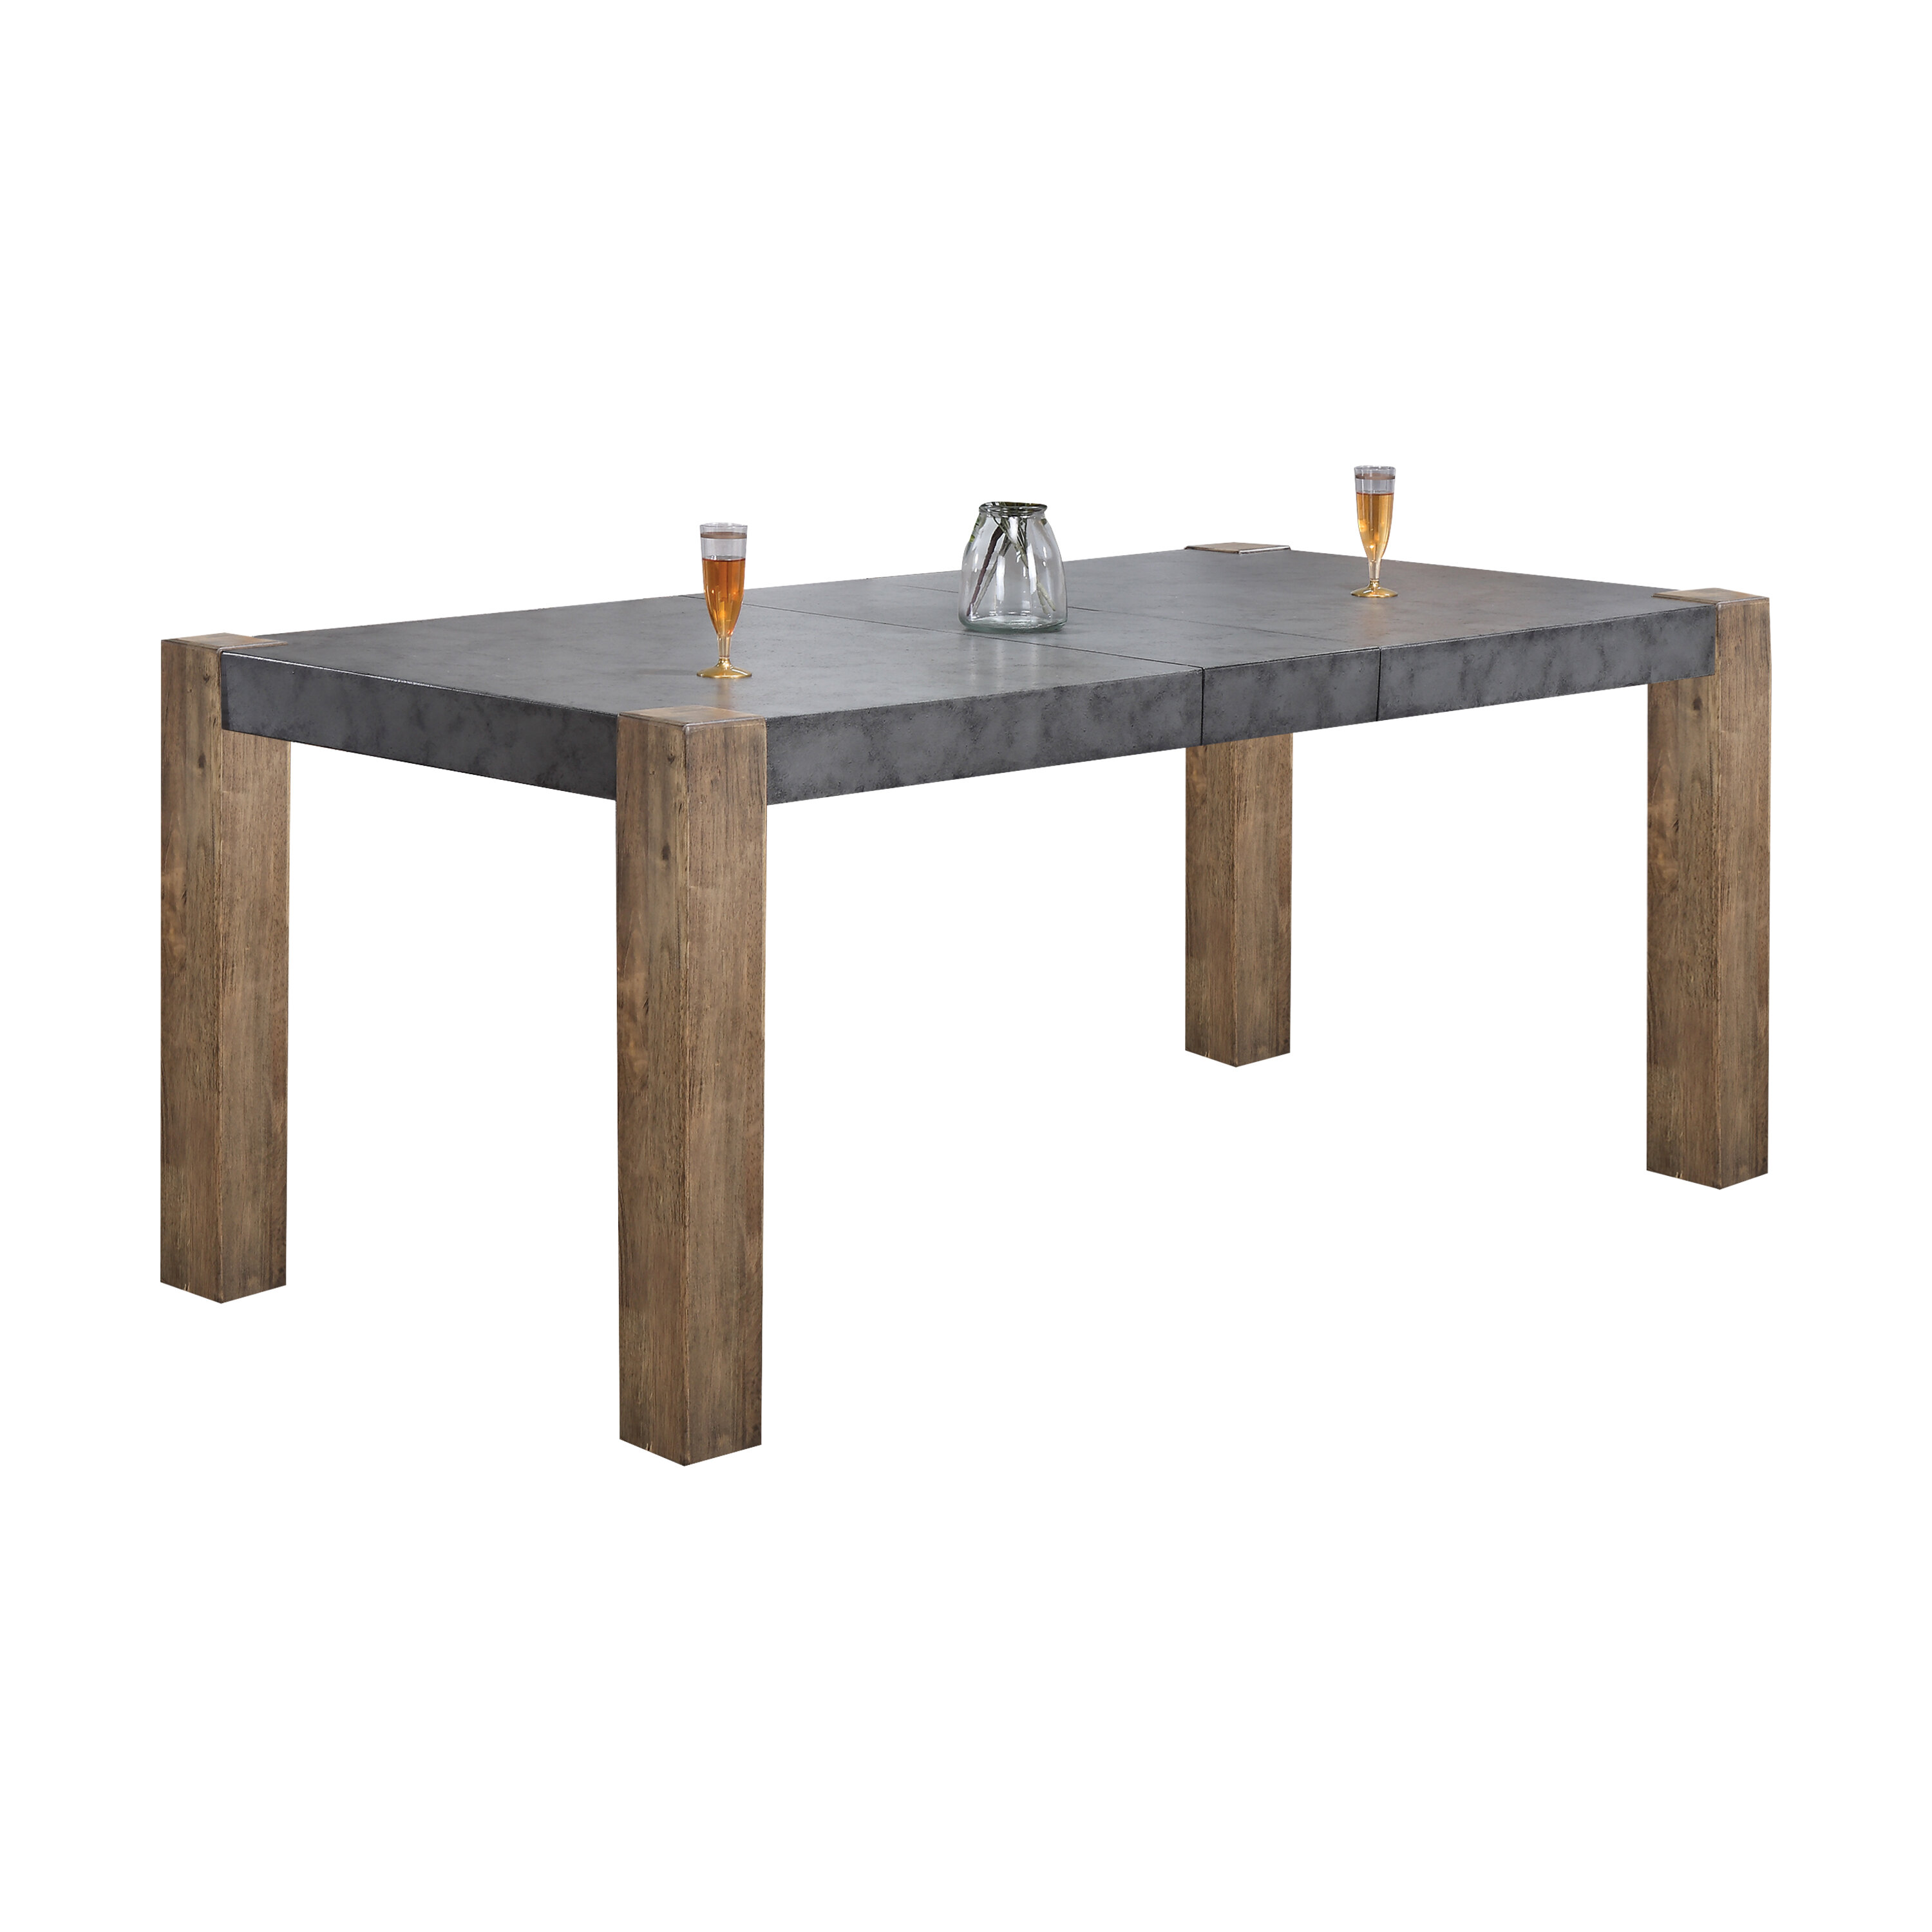 Union Rustic Huang Extendable Dining Table